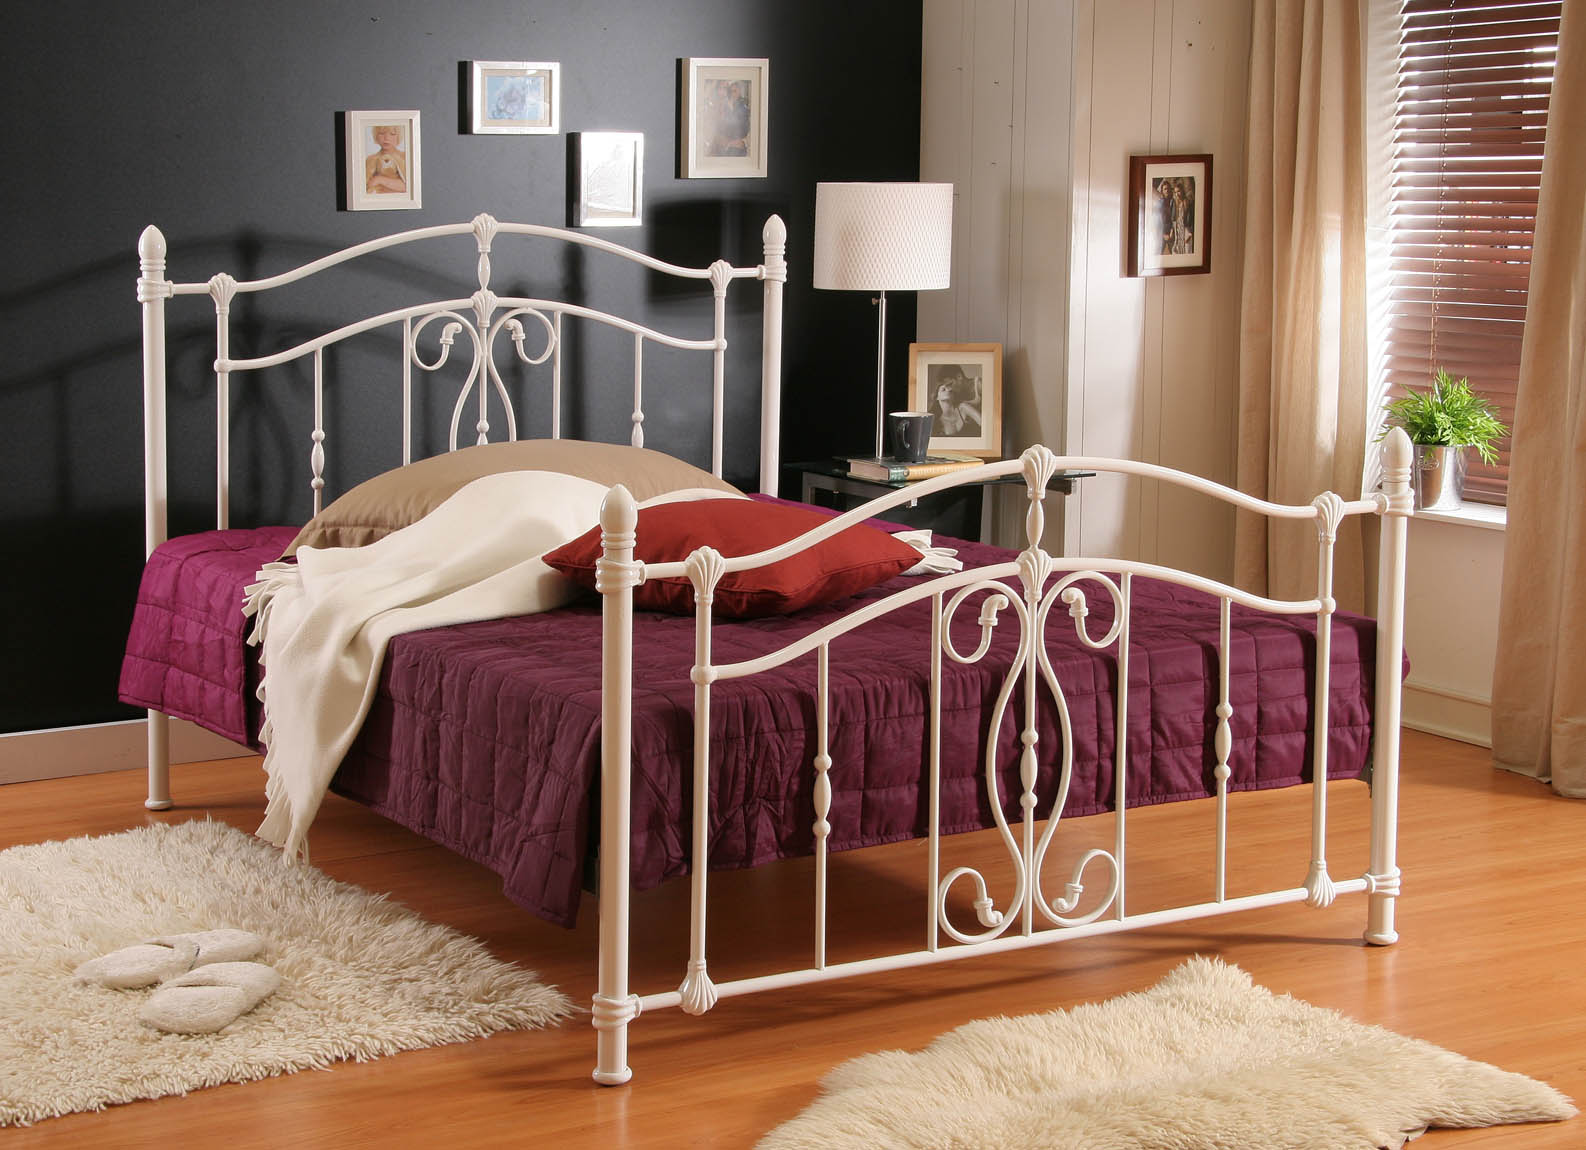 Nice White Bedsteads From